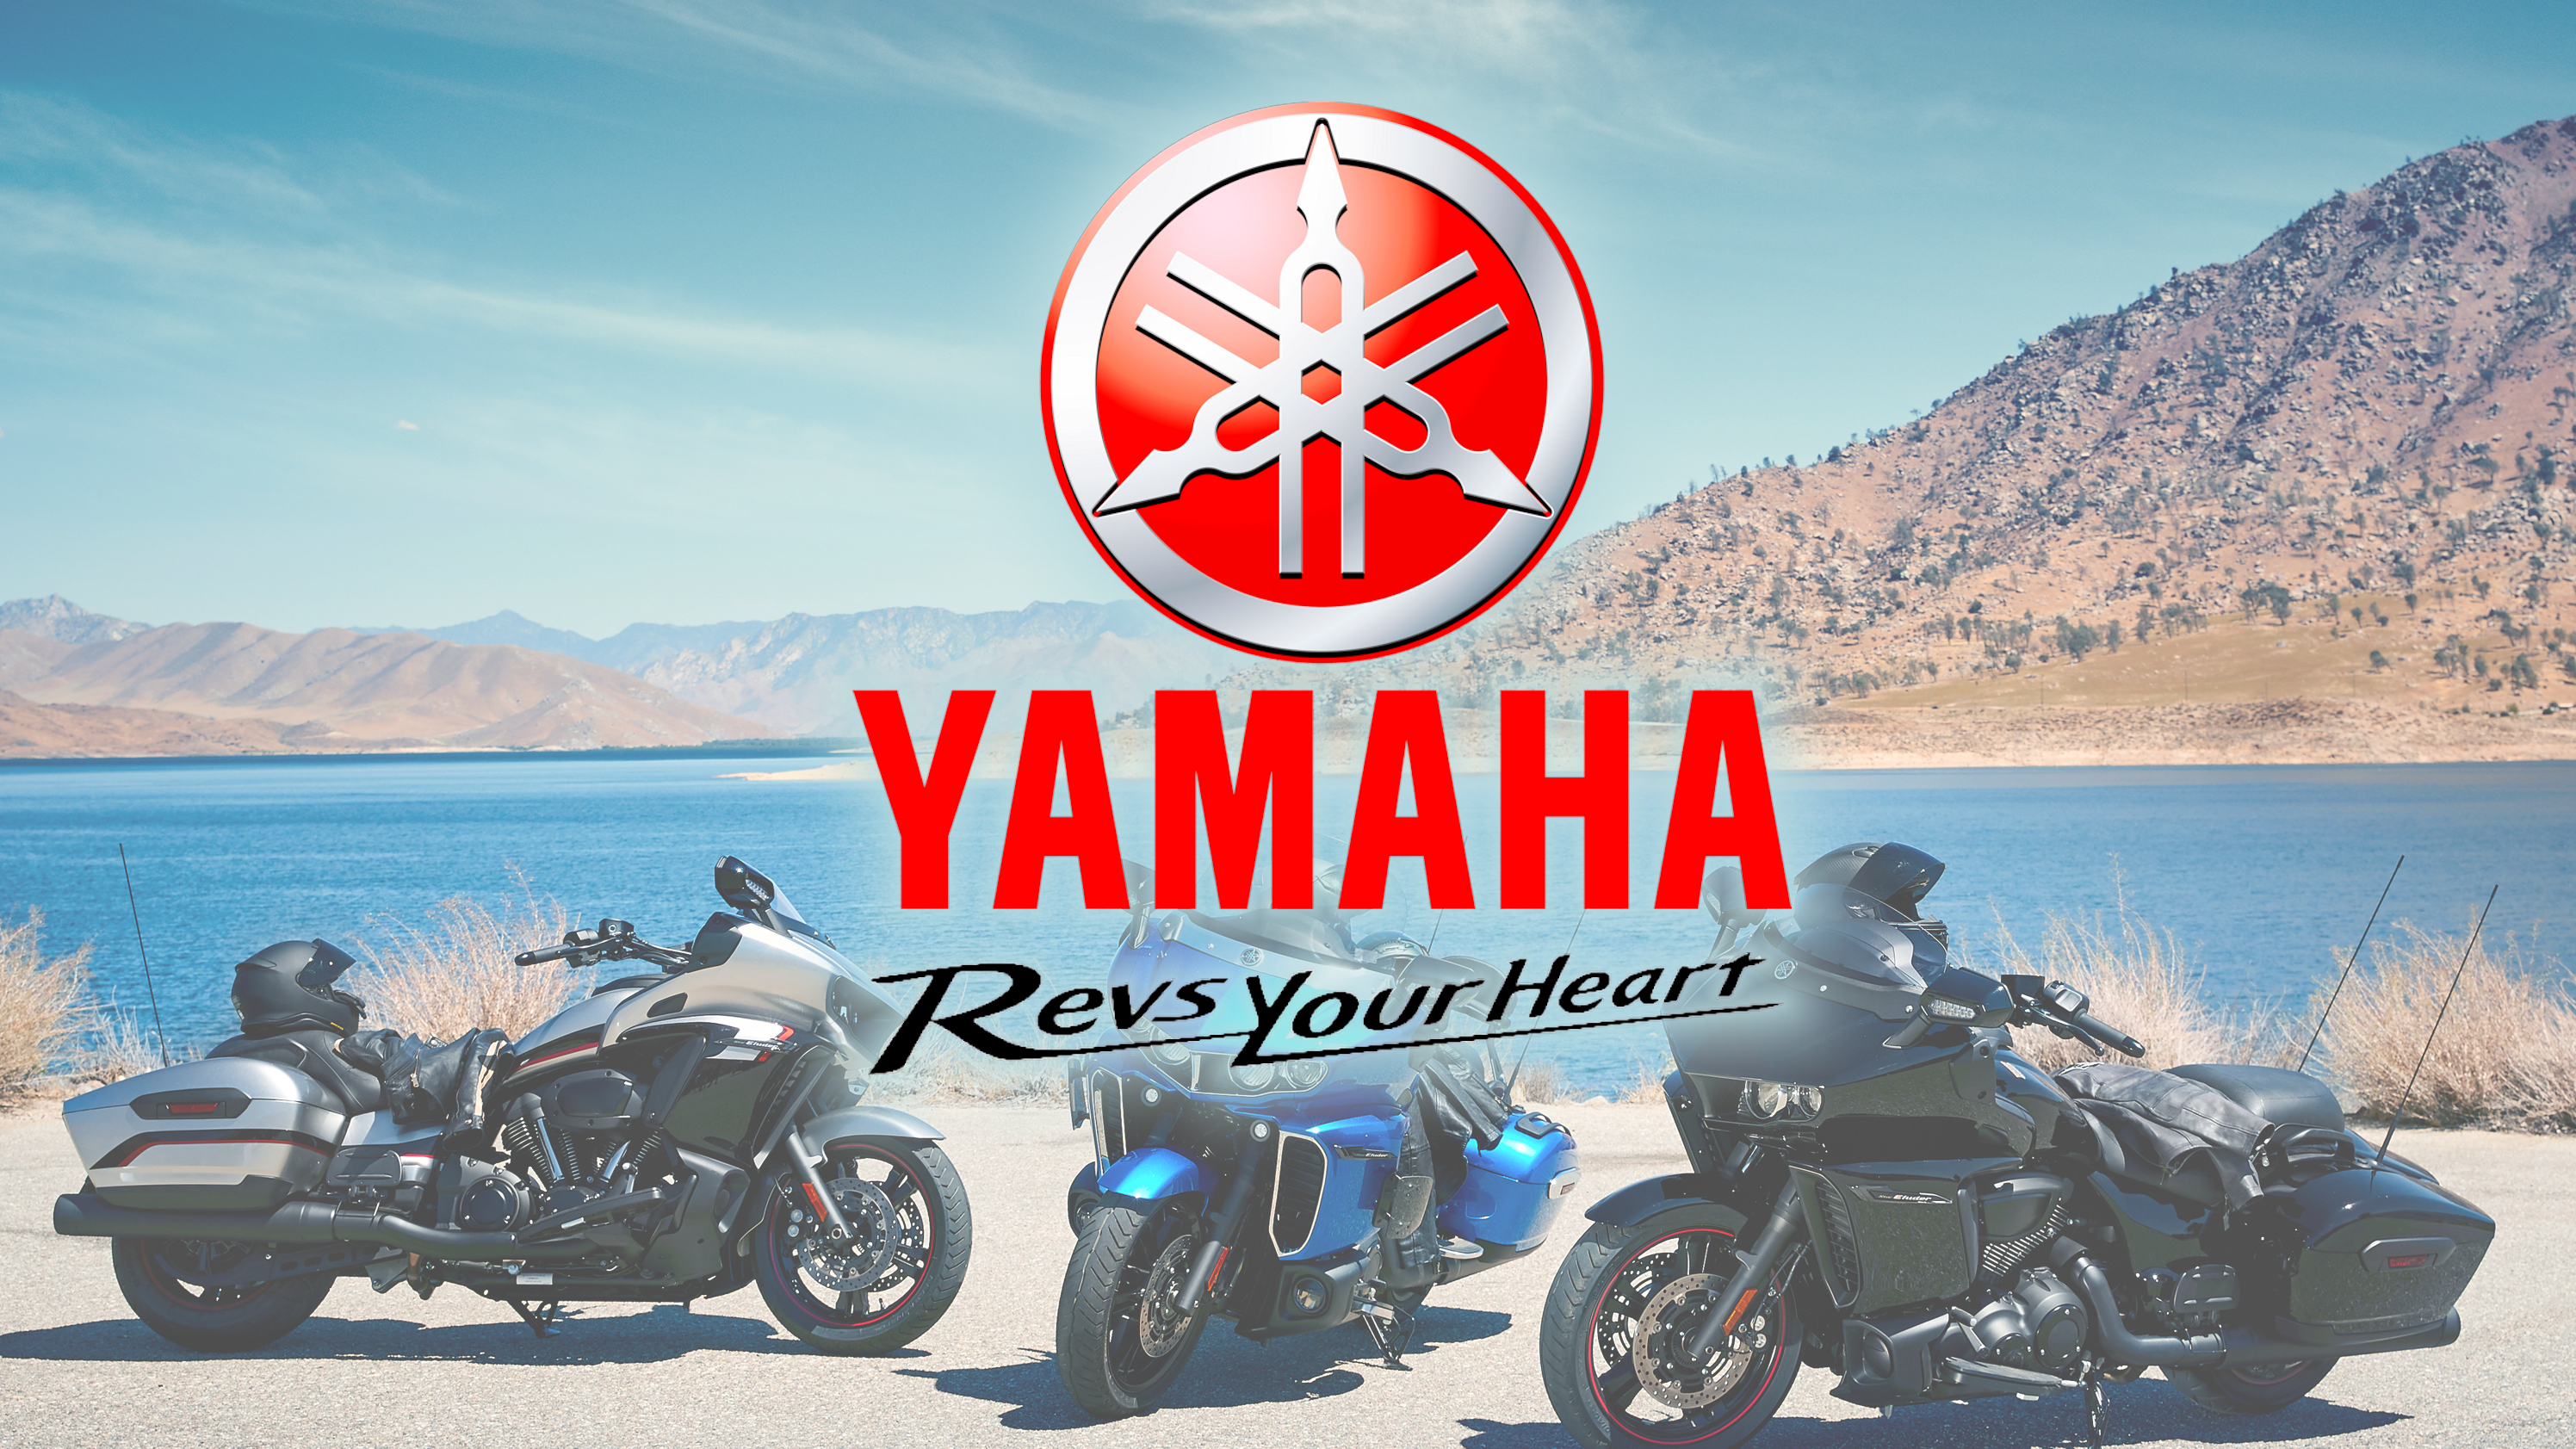 2018 - 2019 Yamaha XMAX | Top Speed